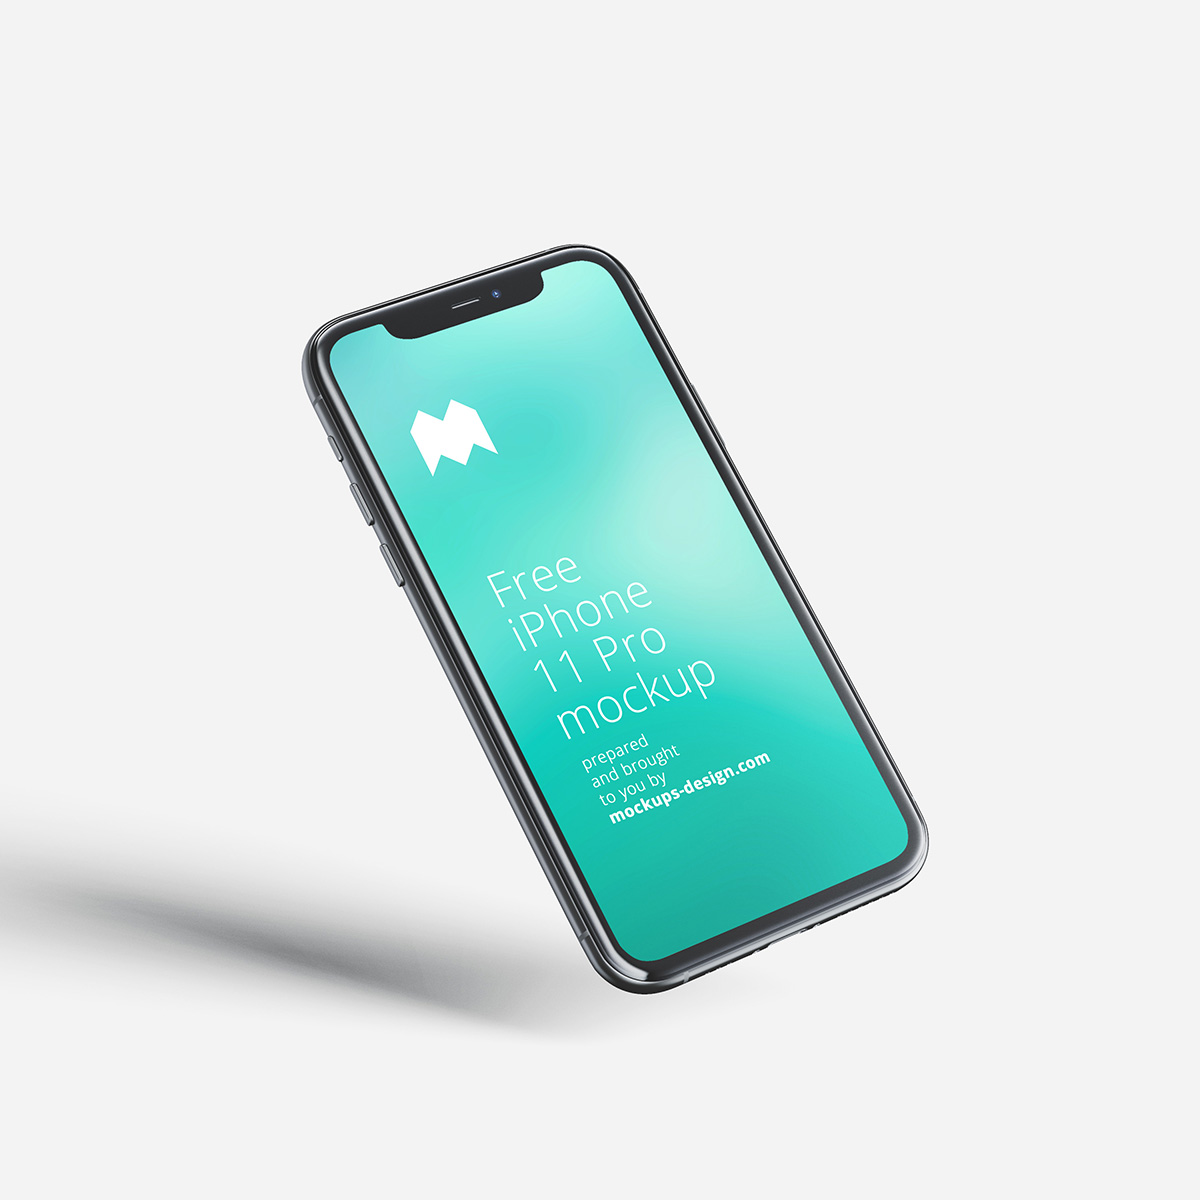 In today's post, i am glad to introduce a collection of the brand new iphone 7 / iphone 7 plus mockups in psd, sketch and vector formats for free download. Free Iphone 11 Pro Mockup Mockups Design